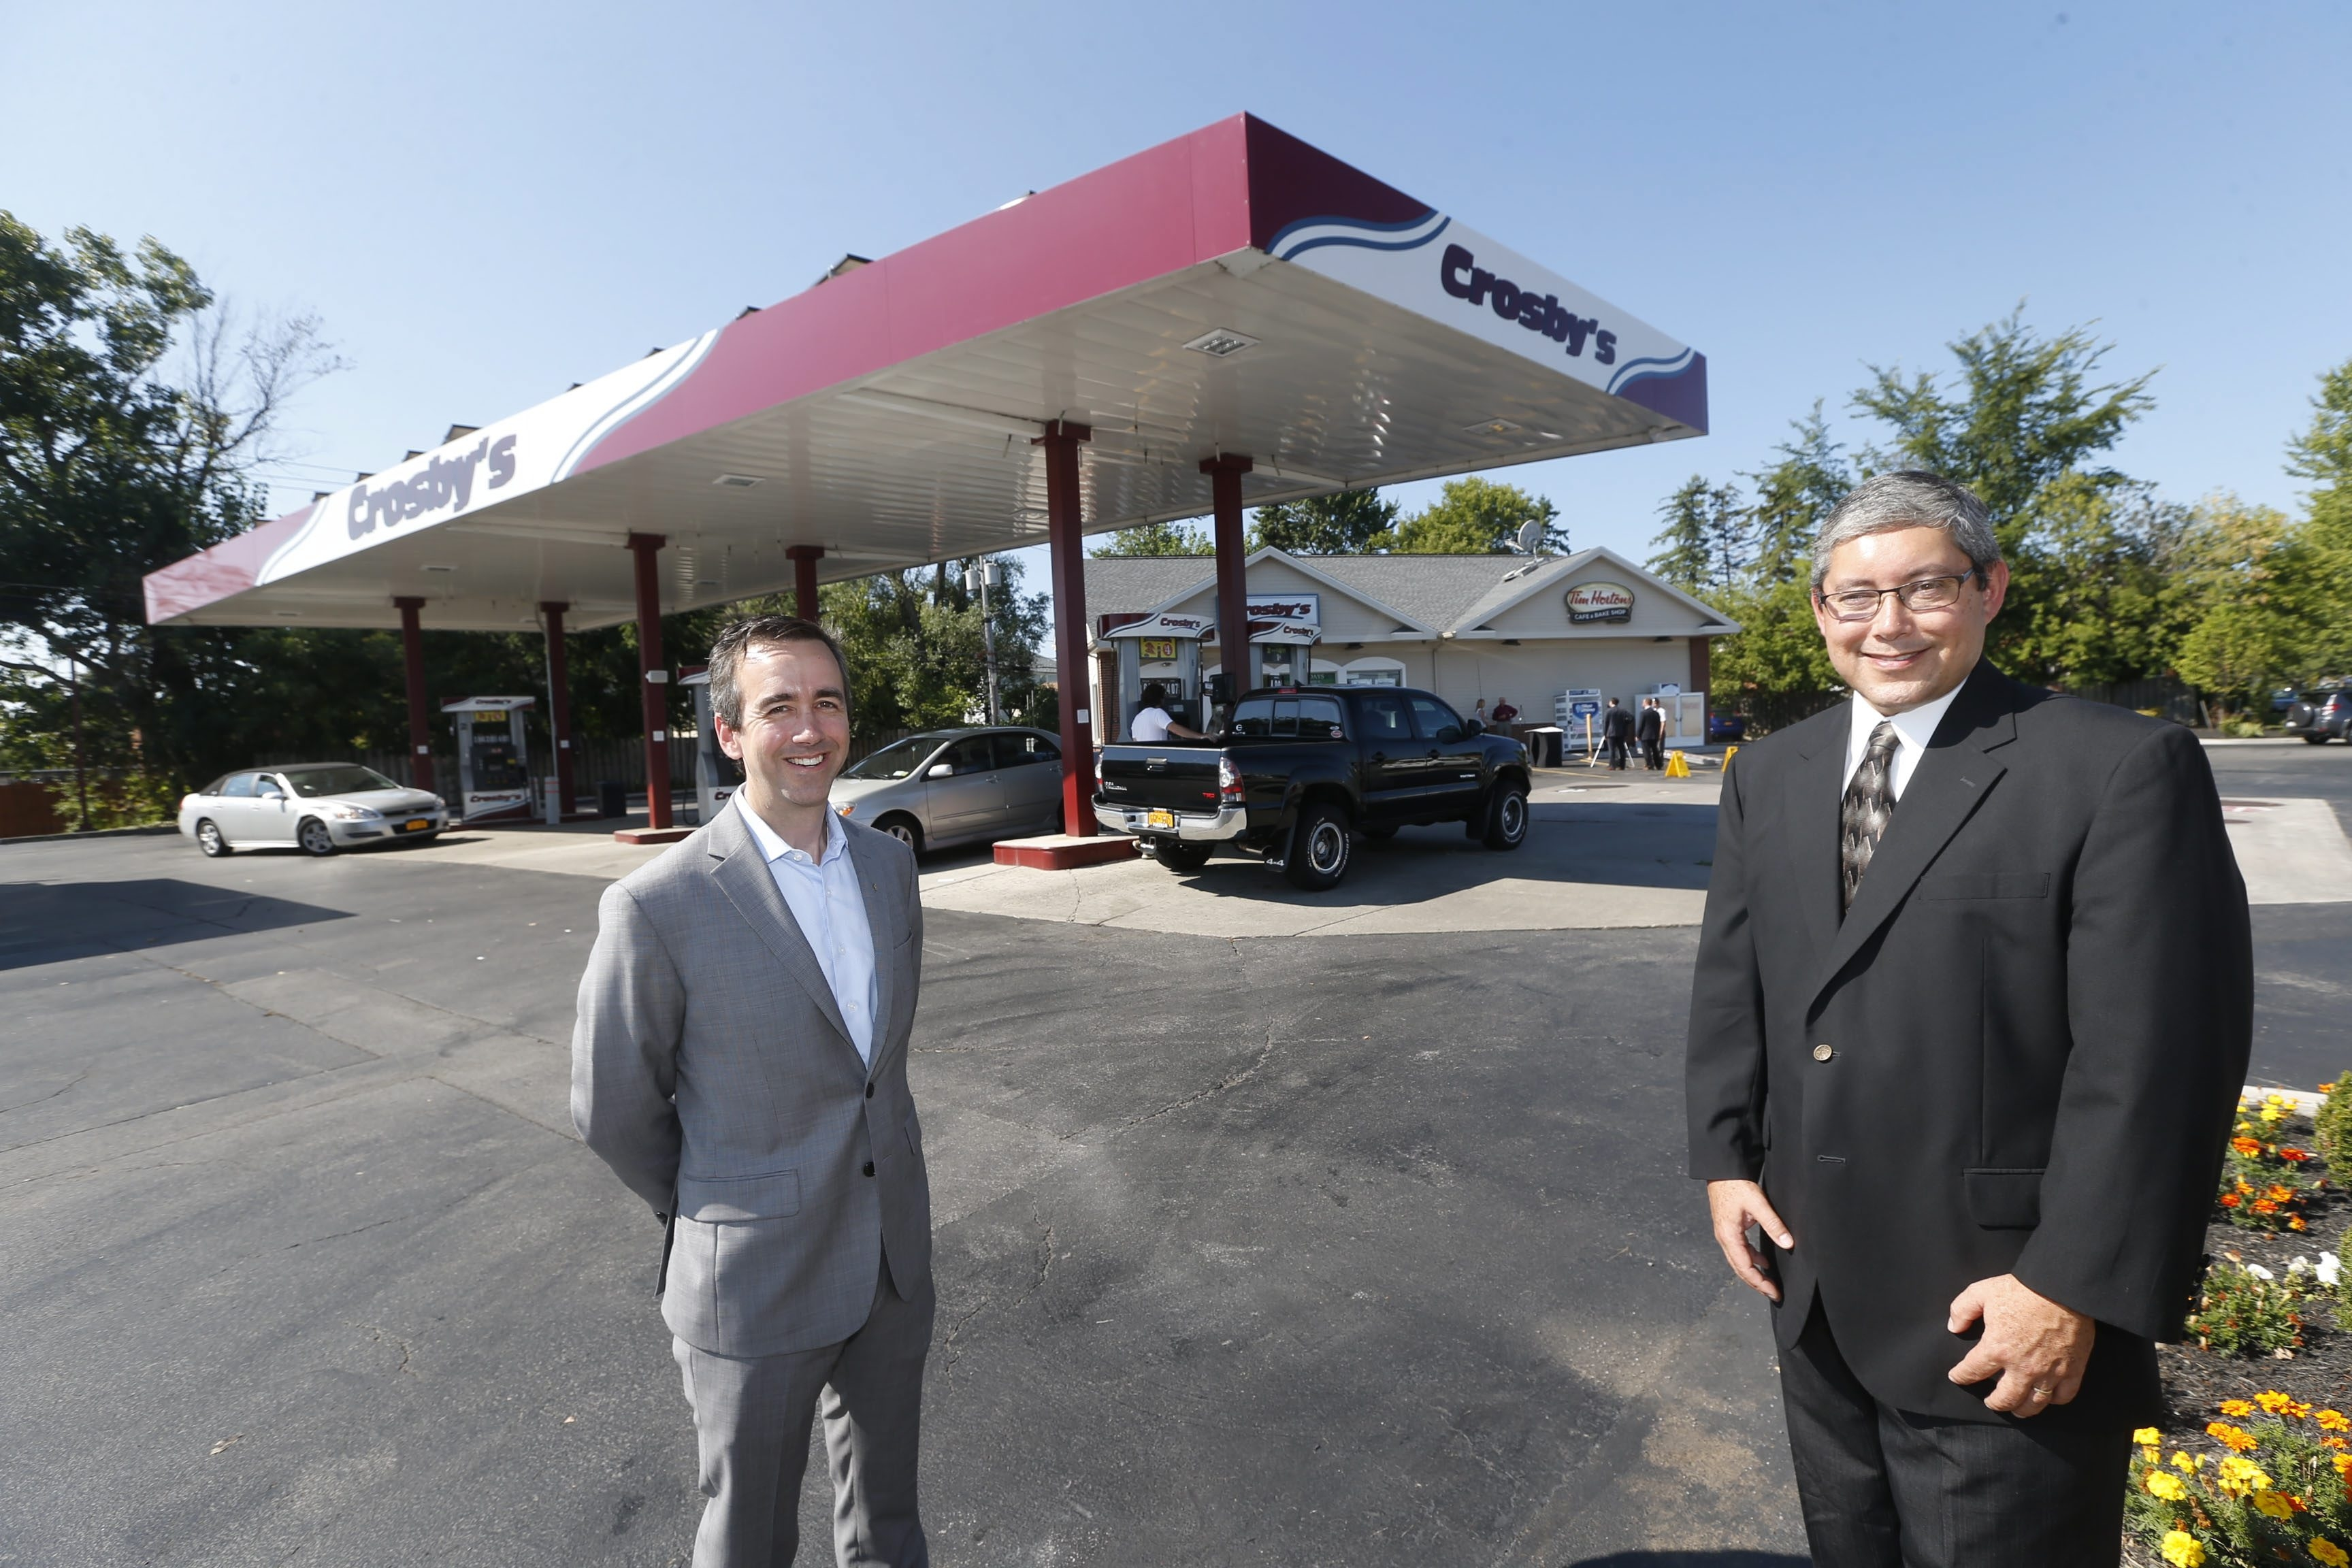 Reid Group President Paul Quebral, right, along with Montante Solar President Daniel T. Montante, announced Thursday that Crosby's Amherst store has gone solar.